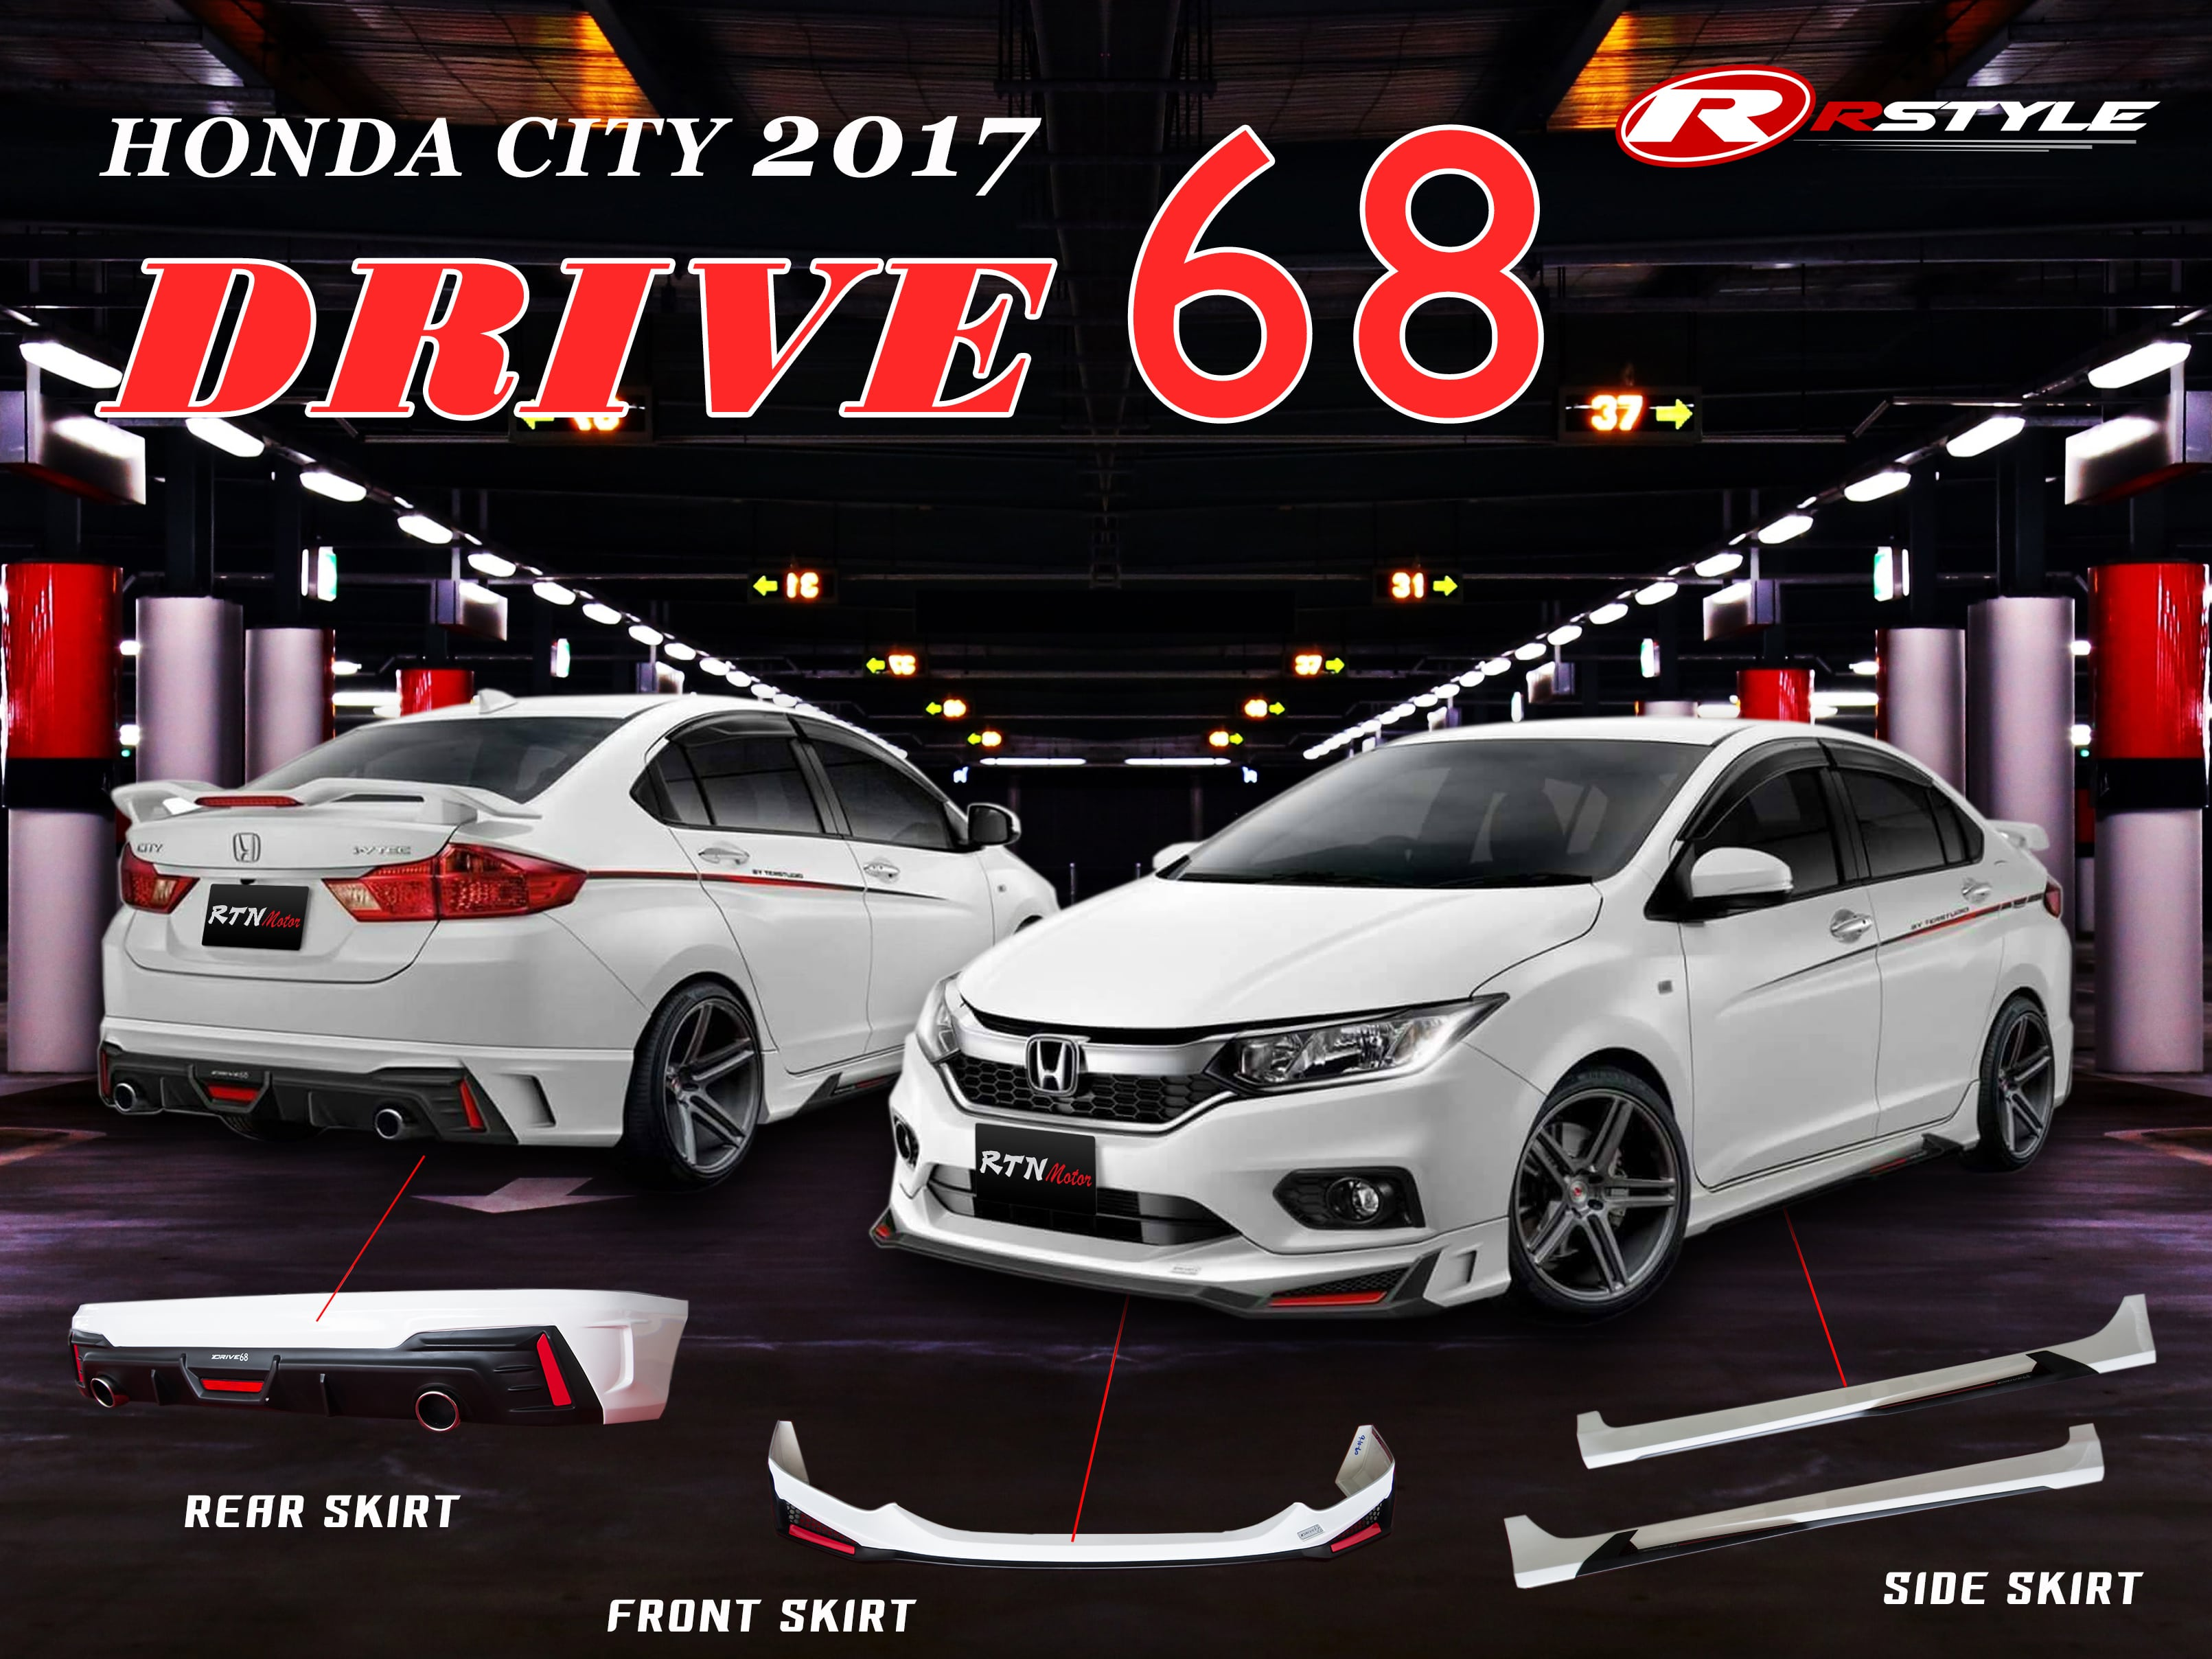 Body Kit Drive68 Style For Honda City 2017 Rstyle Racing